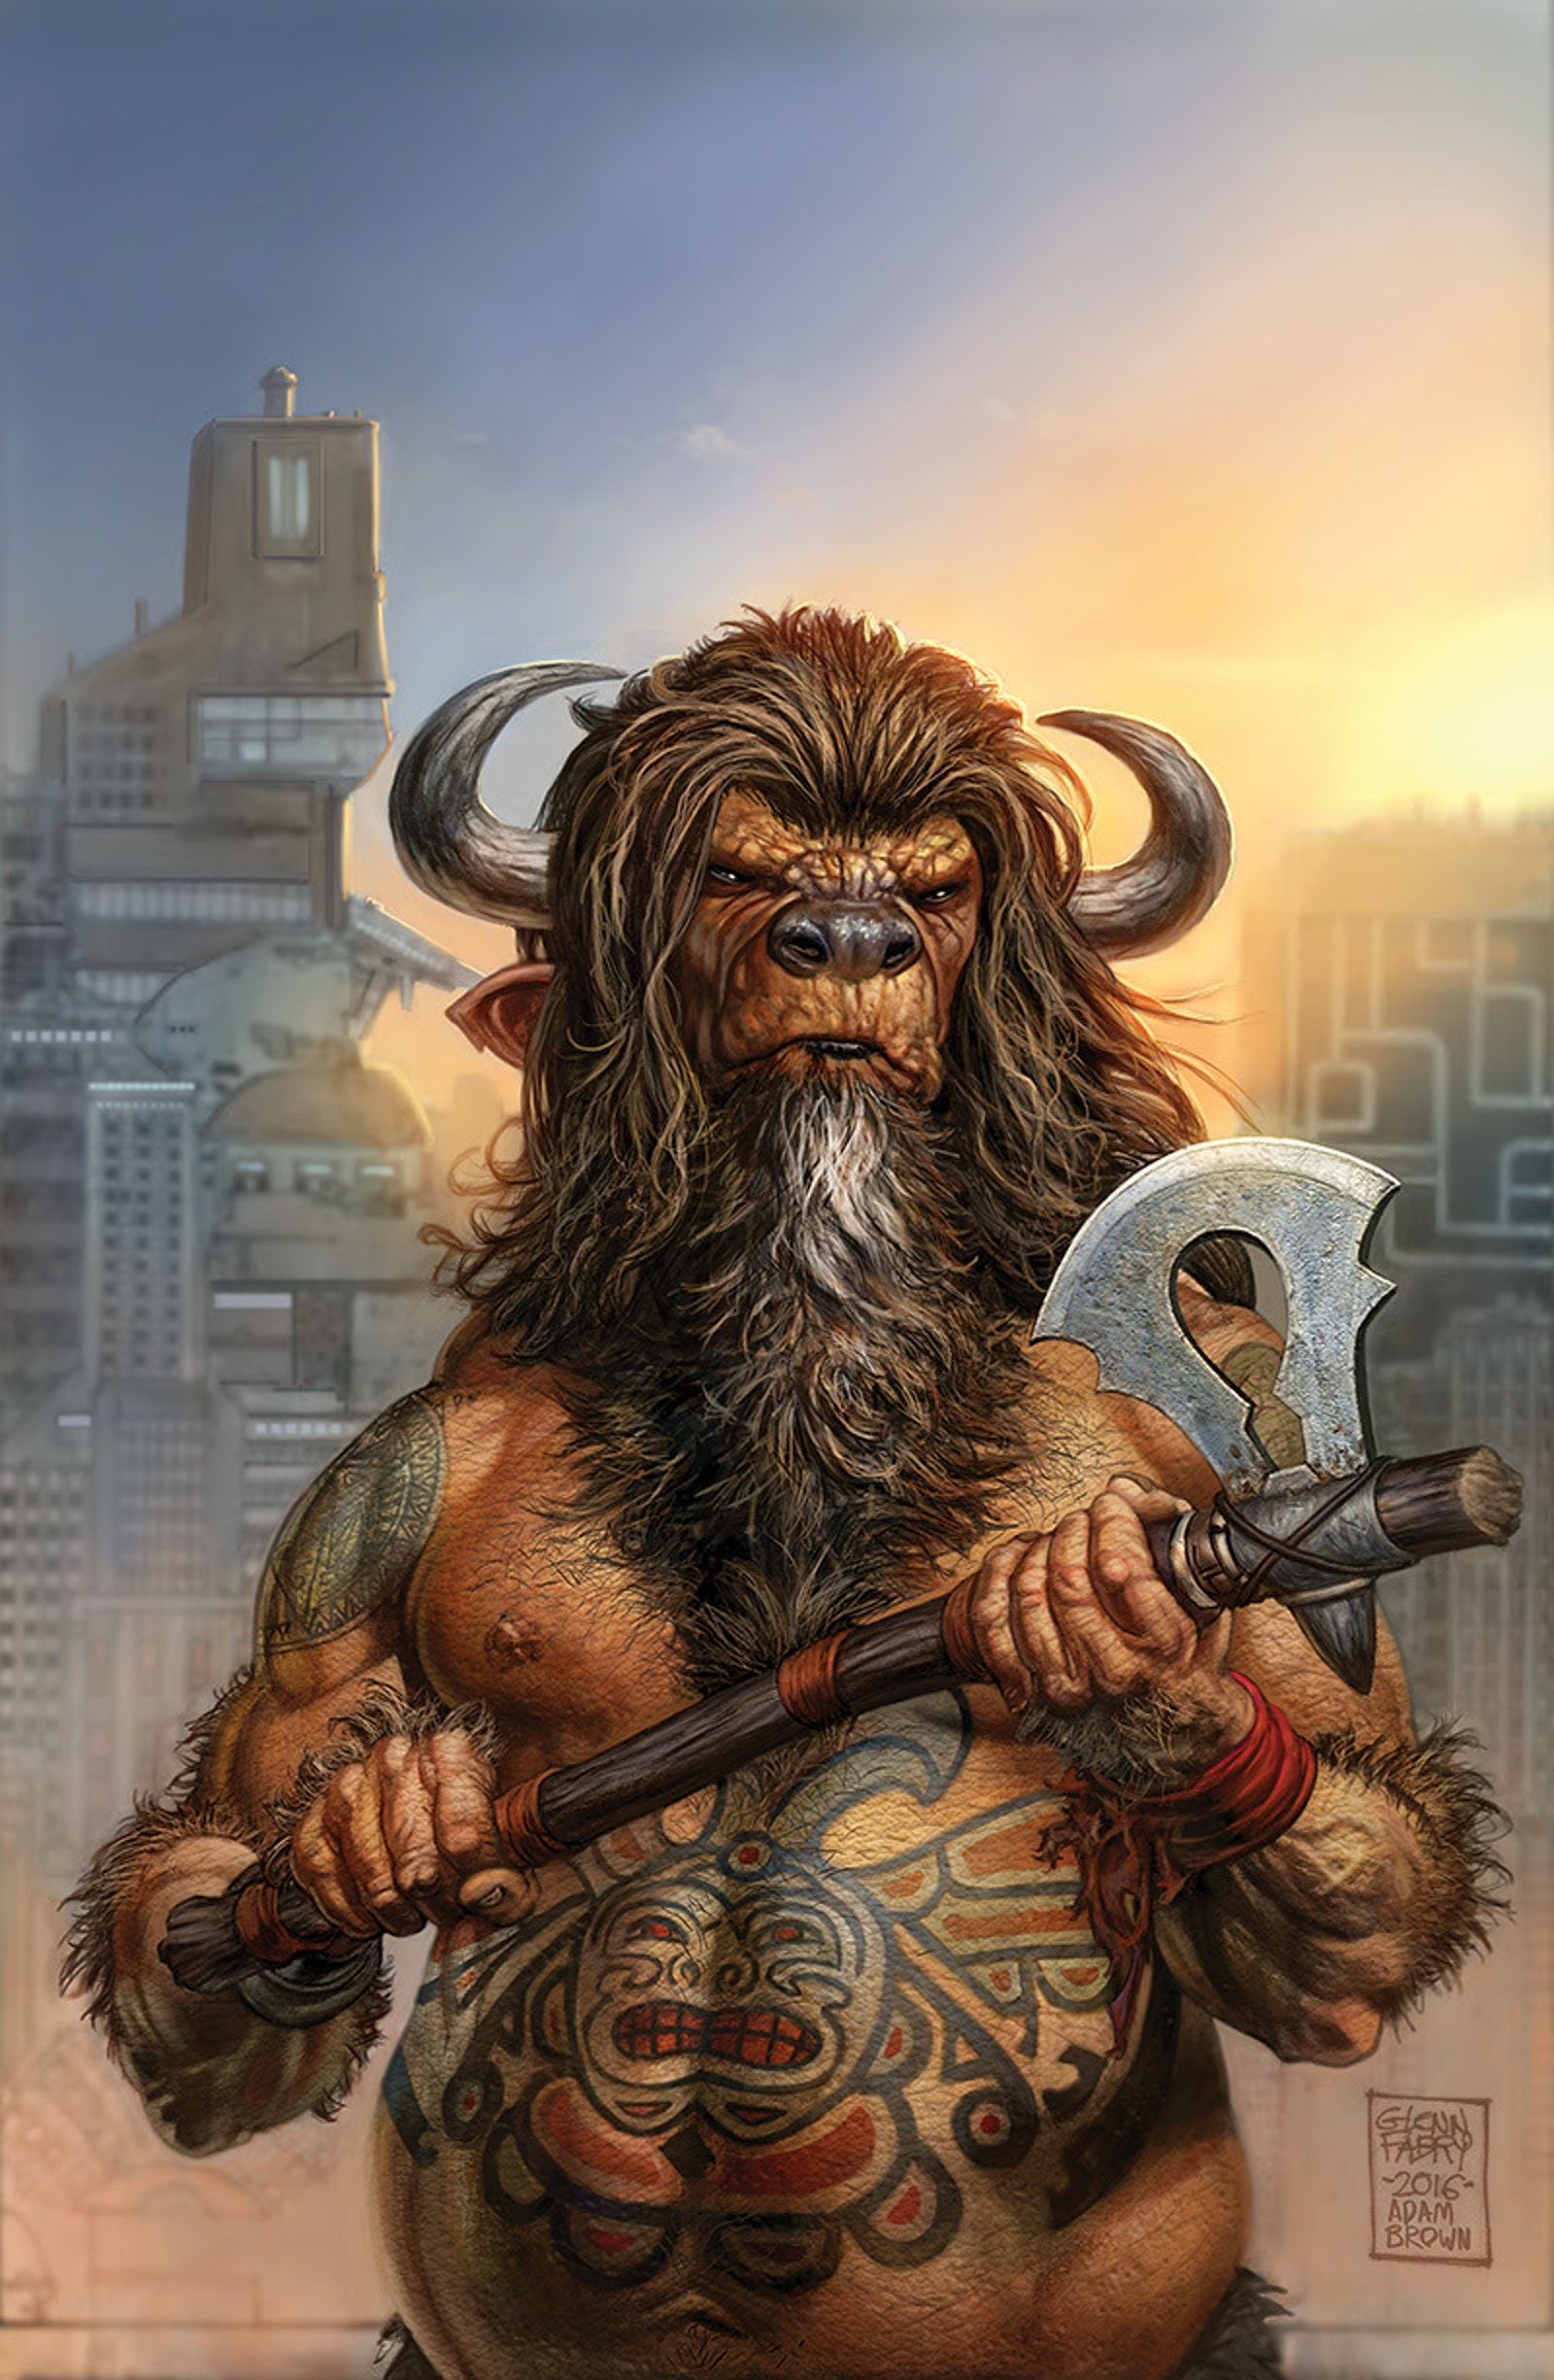 Buffalo Man on the cover of Dark Horse's American Gods comics.